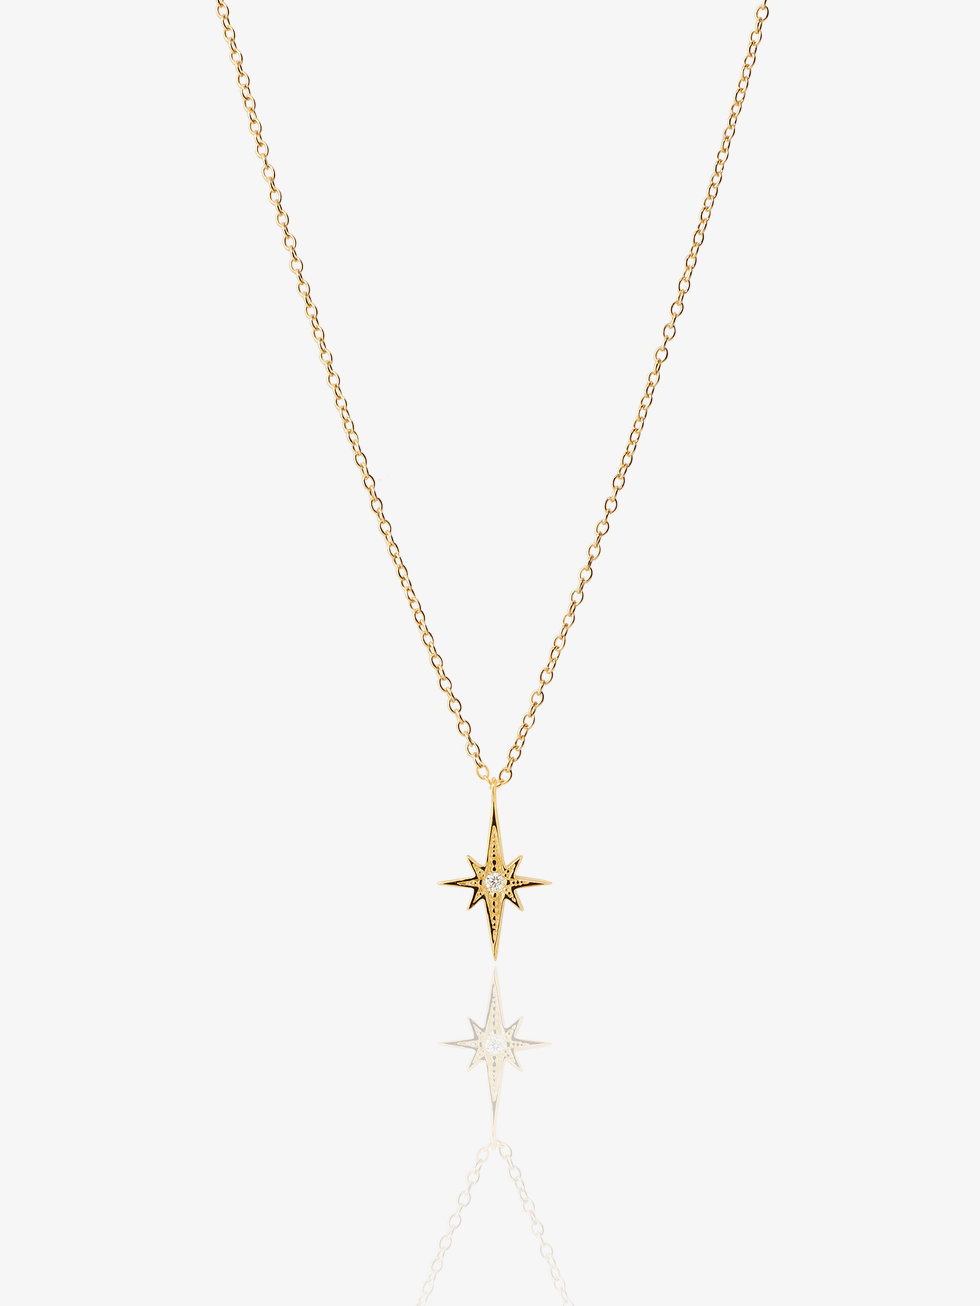 POLE STAR gold necklace